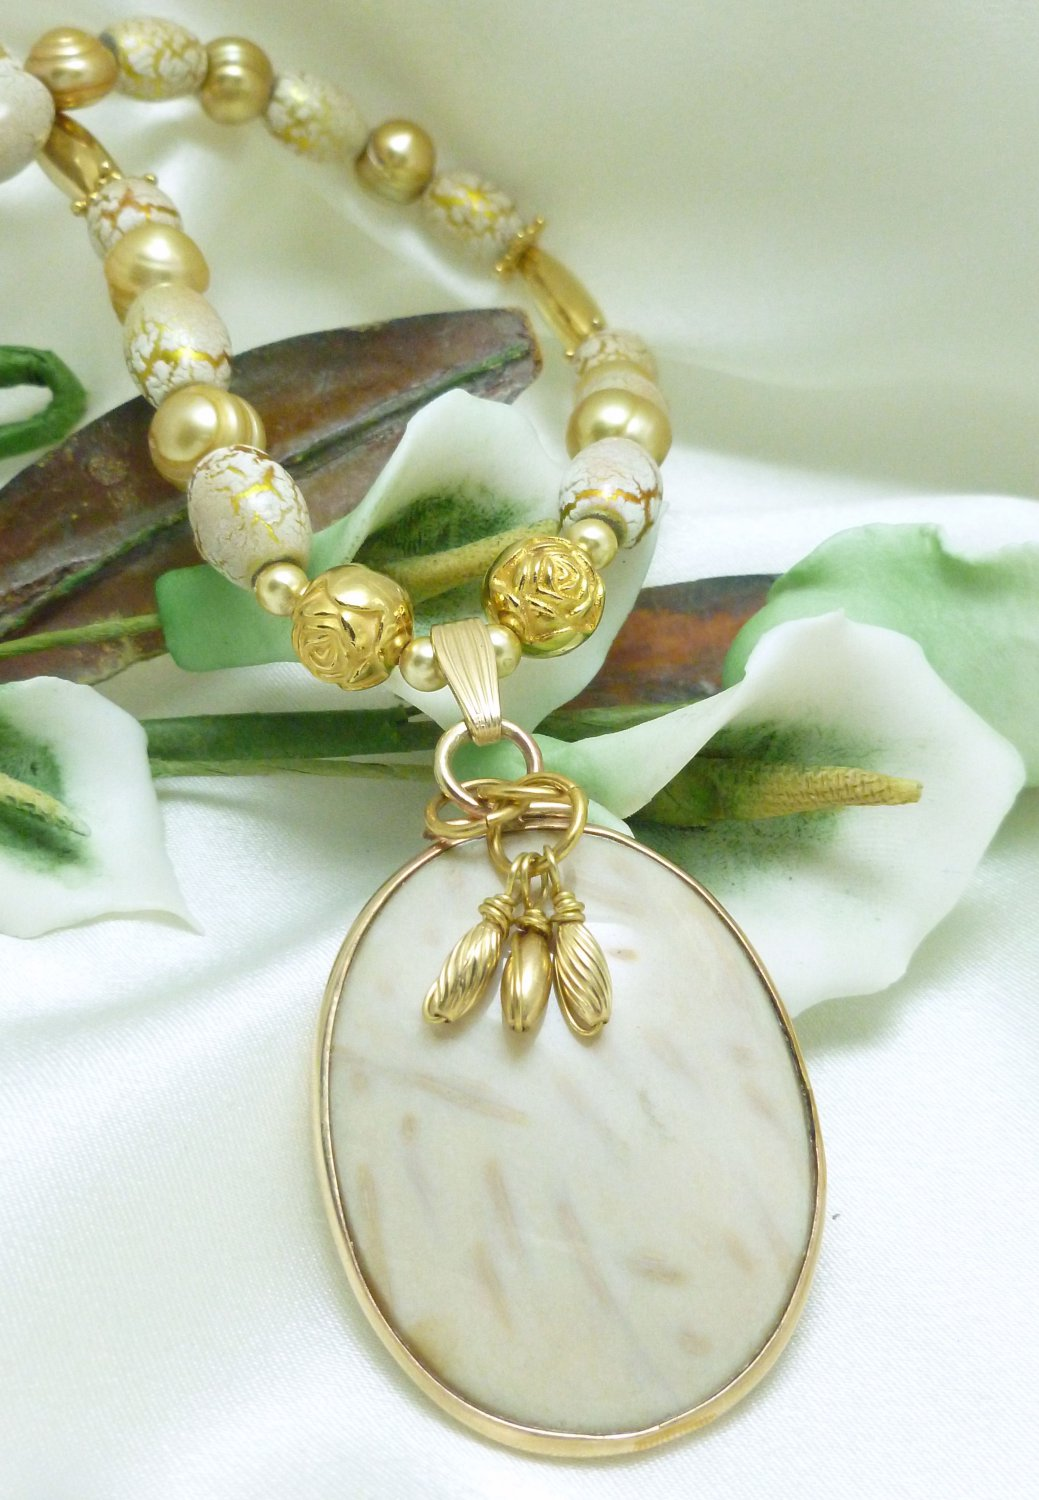 Petrified White Palm Wood Oval Pendant Gold Freshwater Pearl Necklace Artisan Jewelry